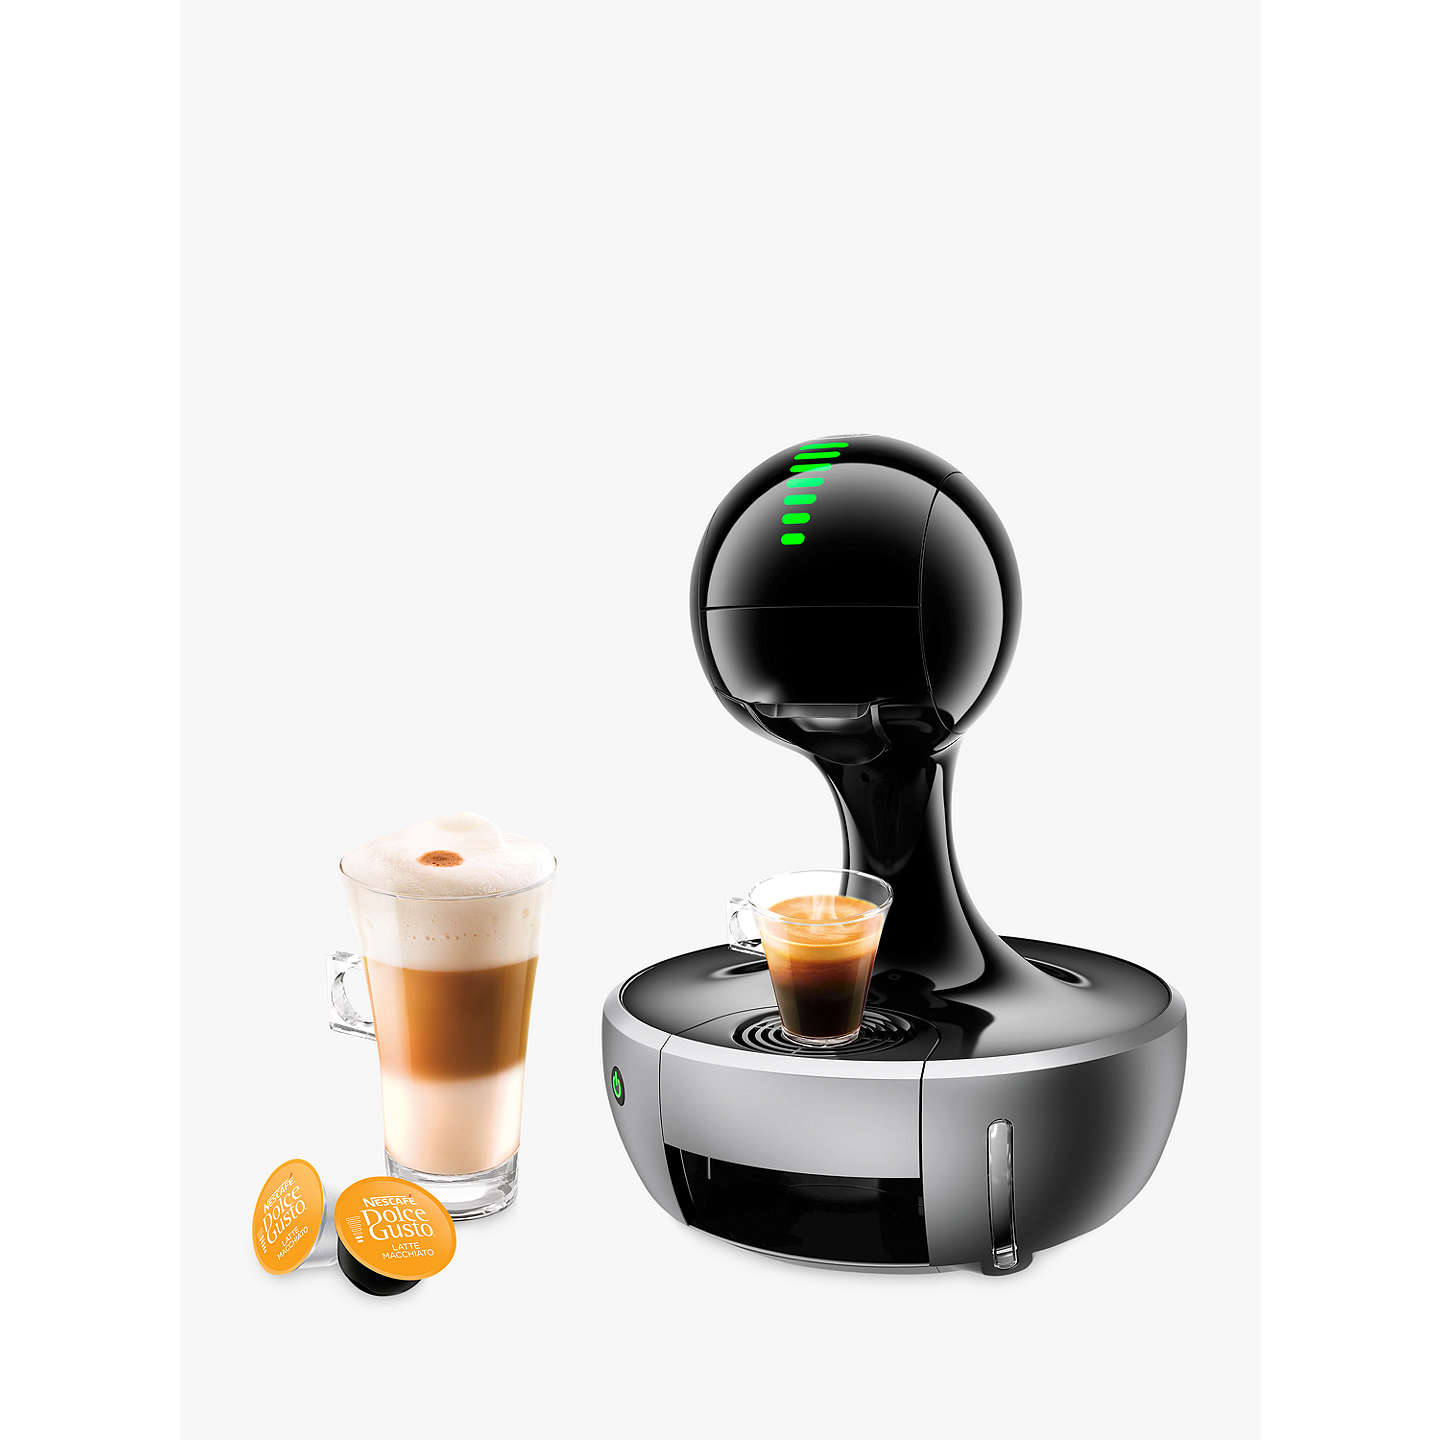 dolce gusto drop coffee machine by krups silver at john lewis. Black Bedroom Furniture Sets. Home Design Ideas